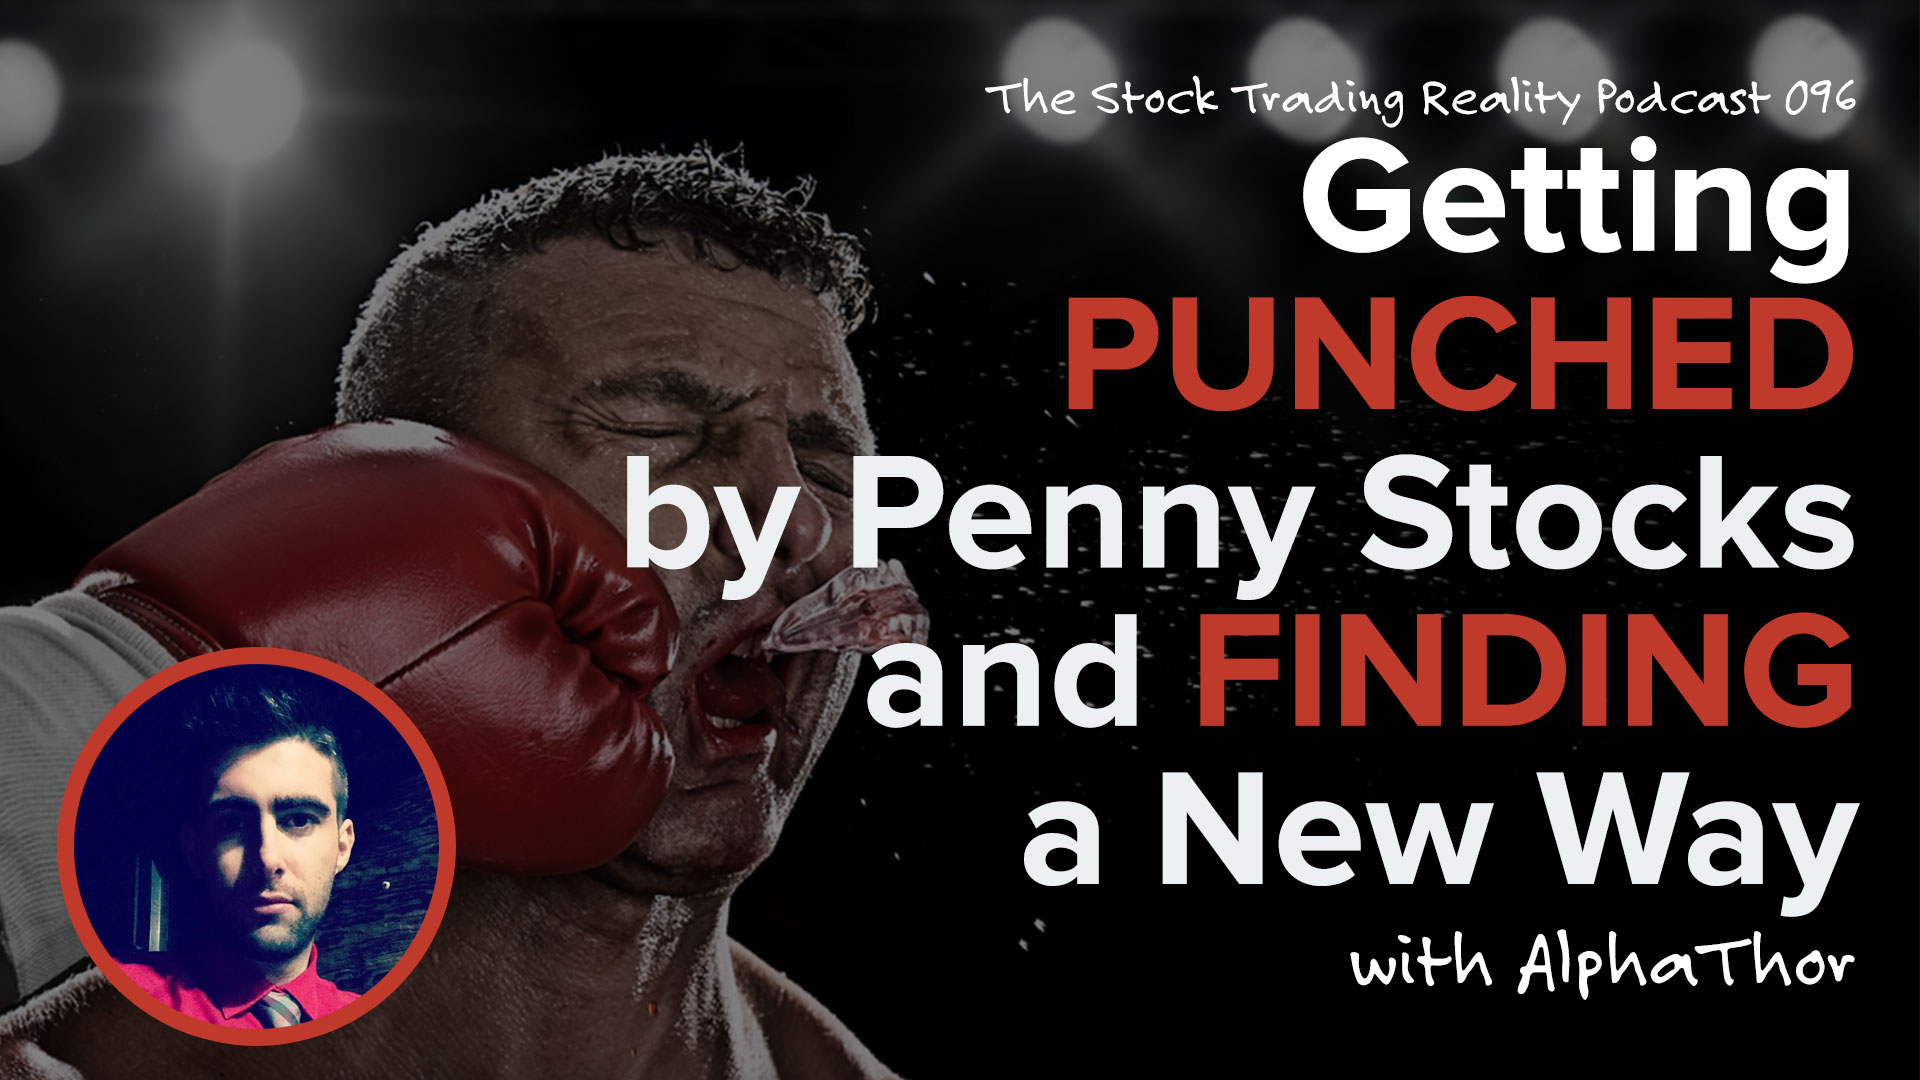 STR 096: Getting Punched by Penny Stocks and Finding a New Way